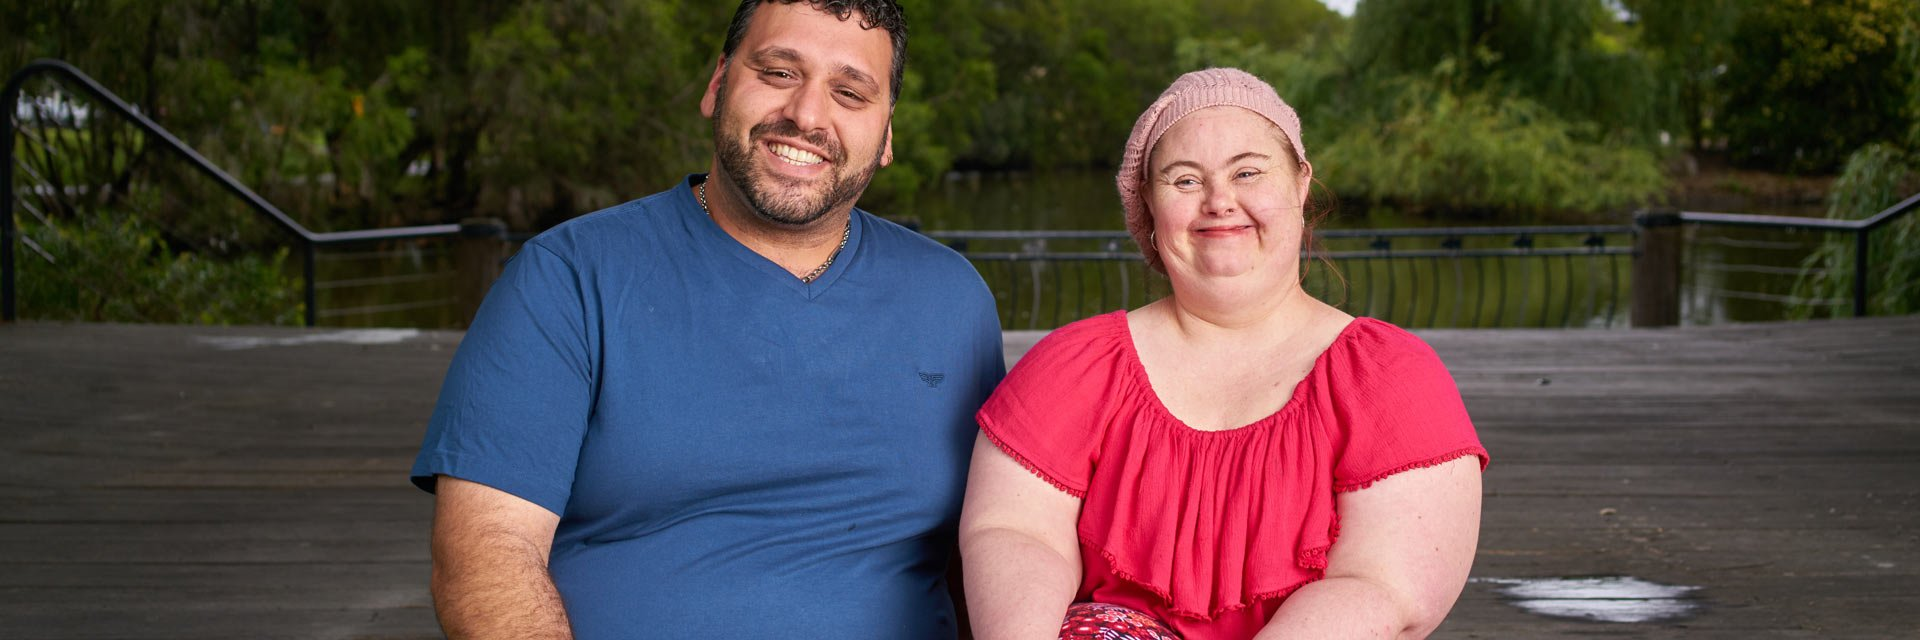 Woman with a disability with a House with No Steps Support Worker